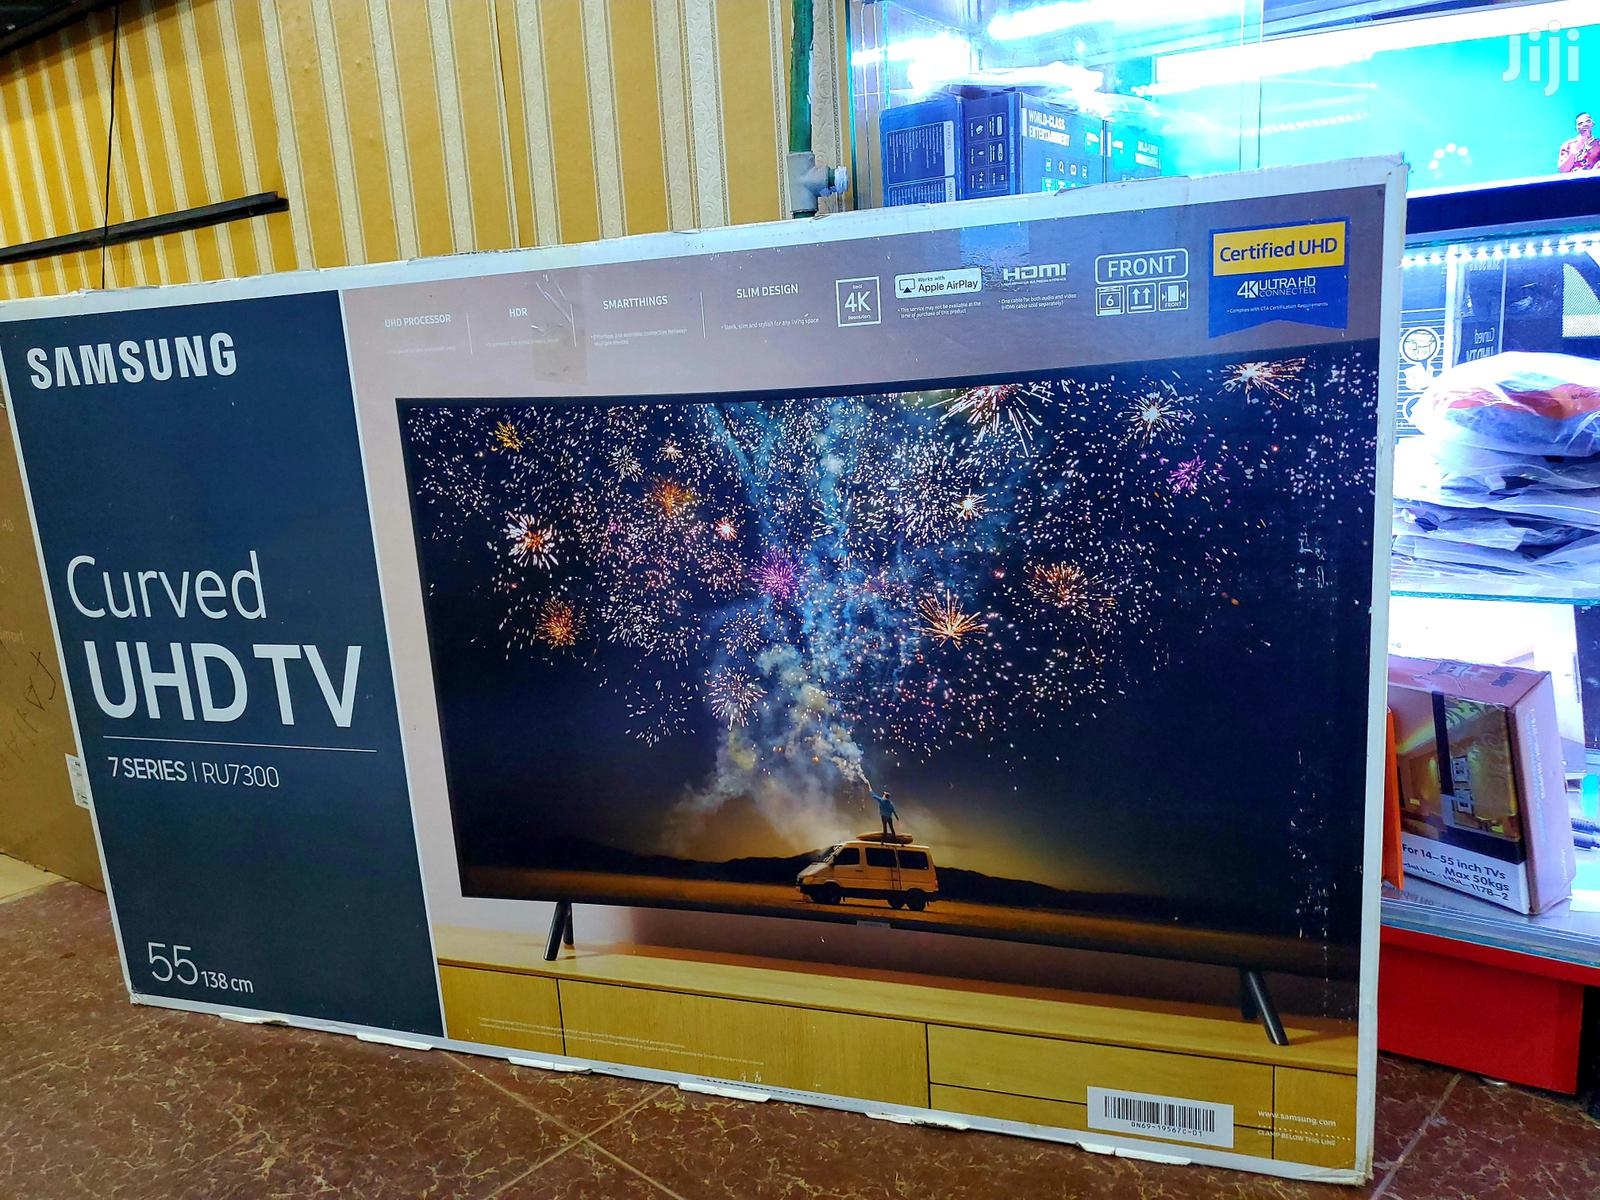 Brand New Samsung Curved Suhd 4k Smart Tv 55 Inches